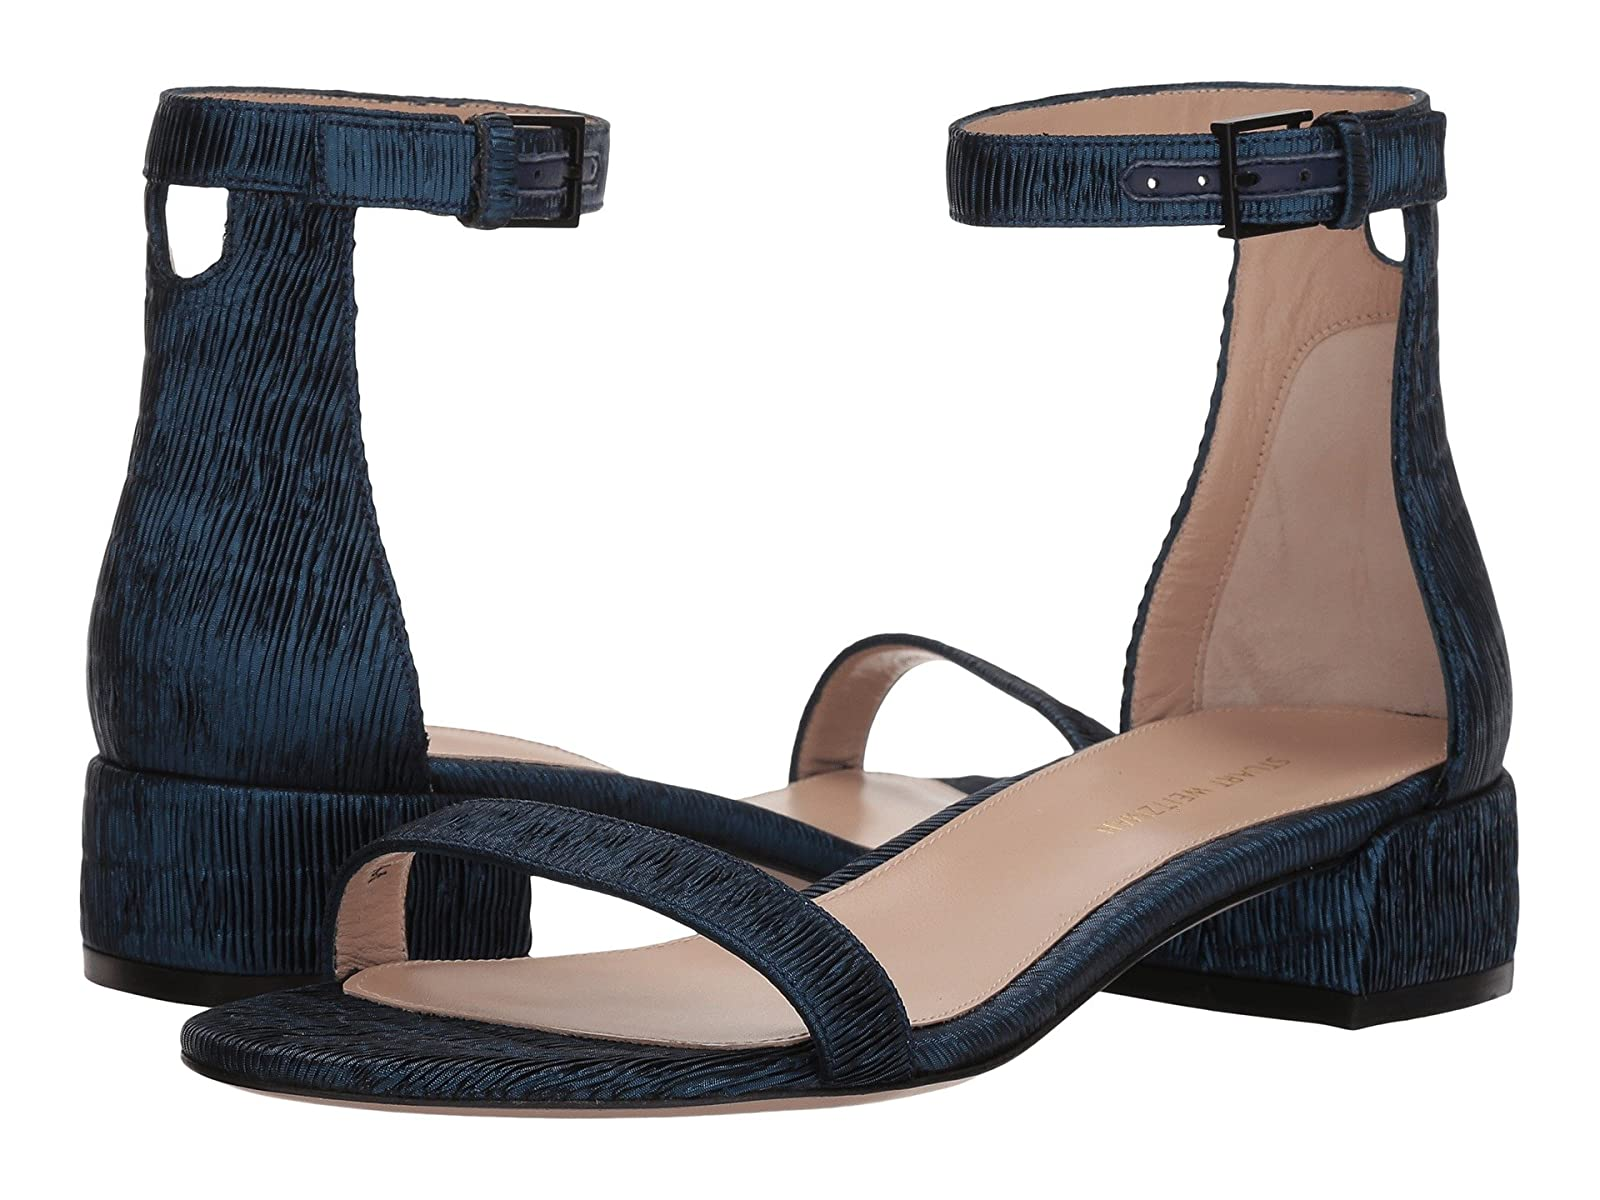 Stuart Weitzman 35lessnudistAtmospheric grades have affordable shoes